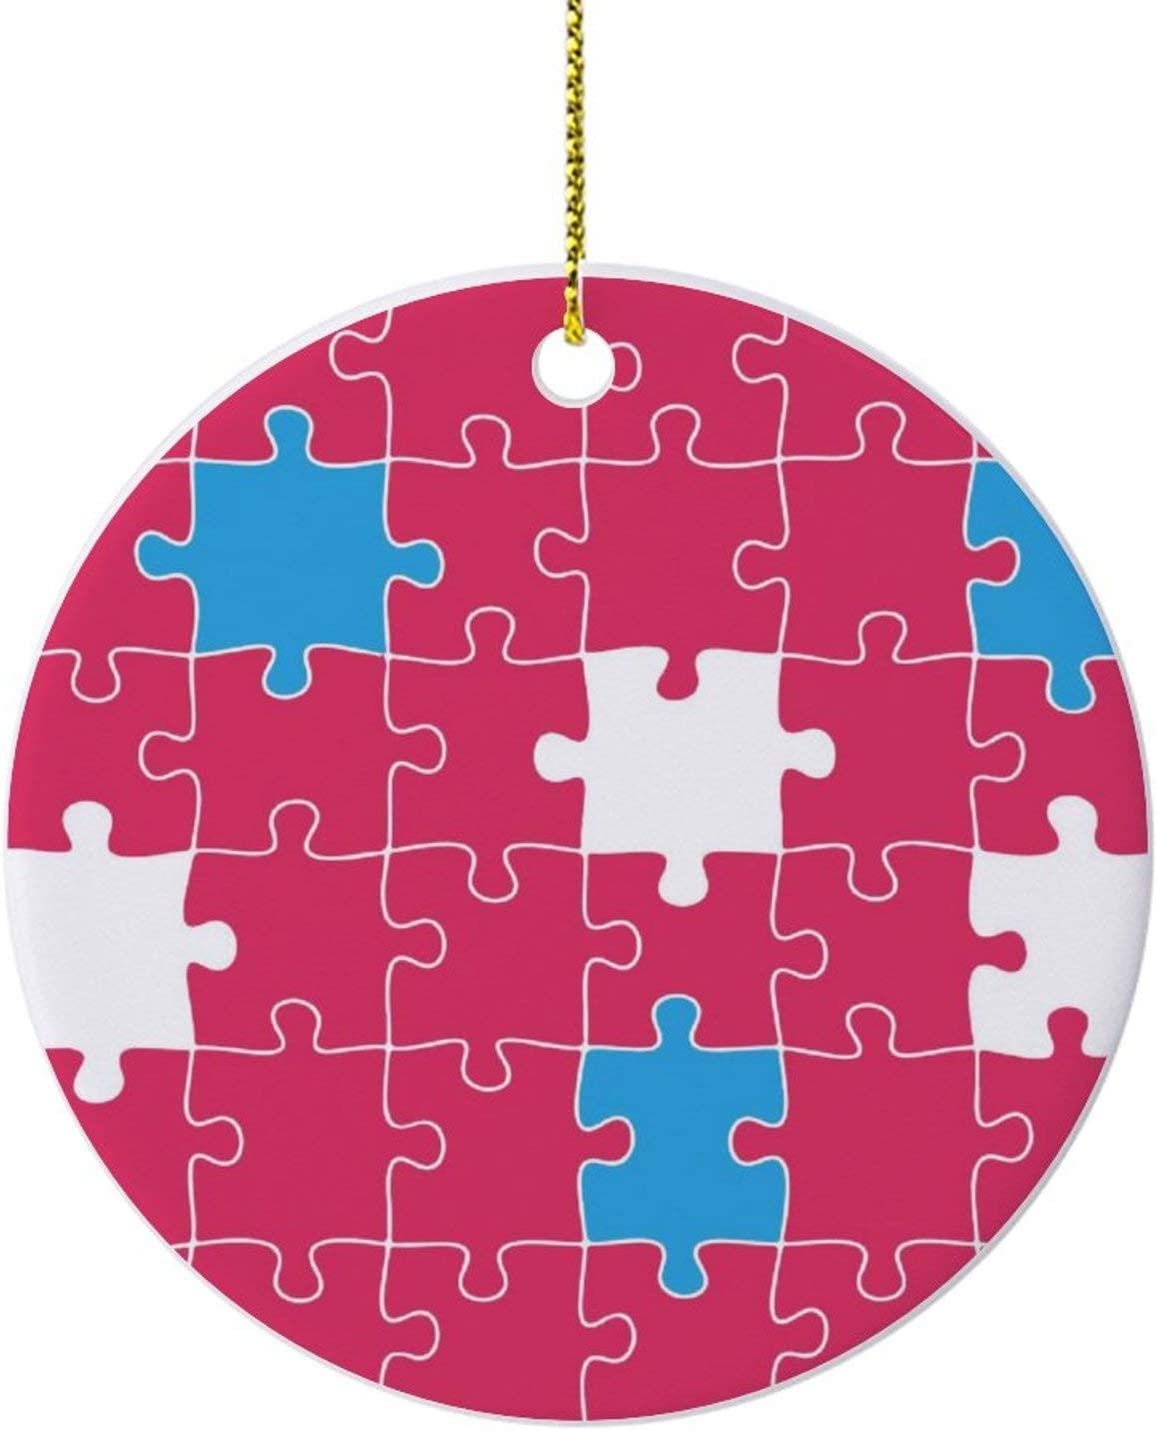 """Pink Jigsaw Puzzle Pattern Ornaments for Christmas Tree,Novelty Round Porcelain Ornaments 3"""",Keepsake Christmas Ornaments,Farmhouse Christmas Decor,for Home"""